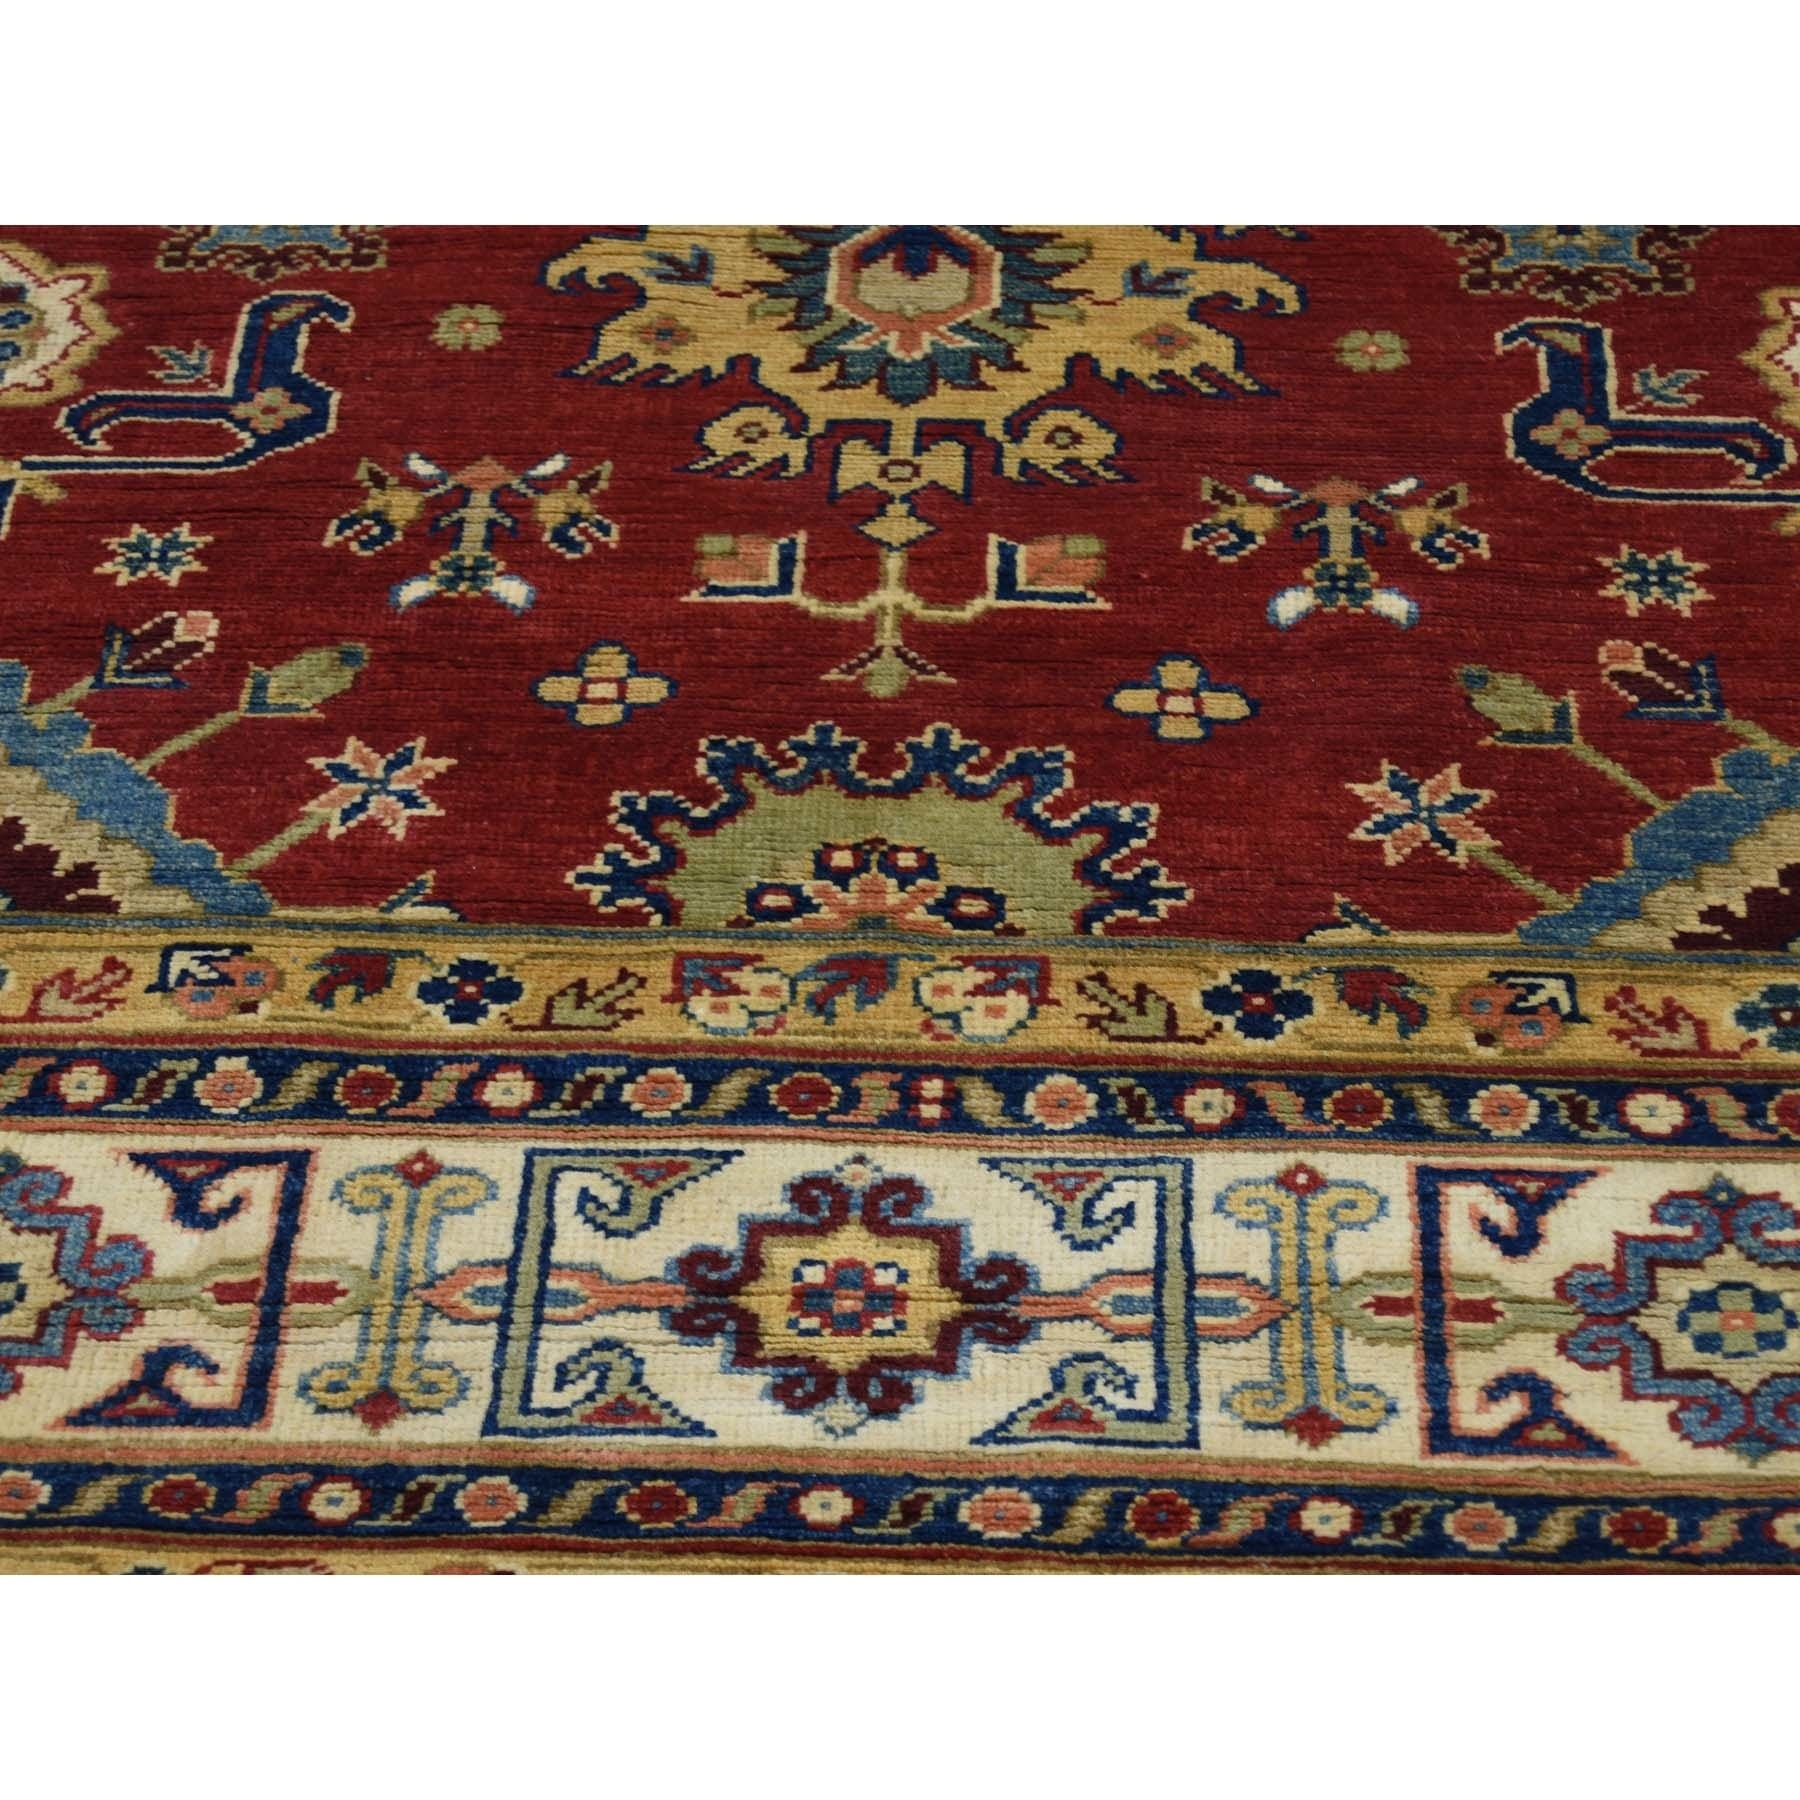 Shahbanu Rugs Special Kazak Geometric Design Hand Knotted Oriental Rug 8 1 X 9 7 Free Shipping Today 26469287